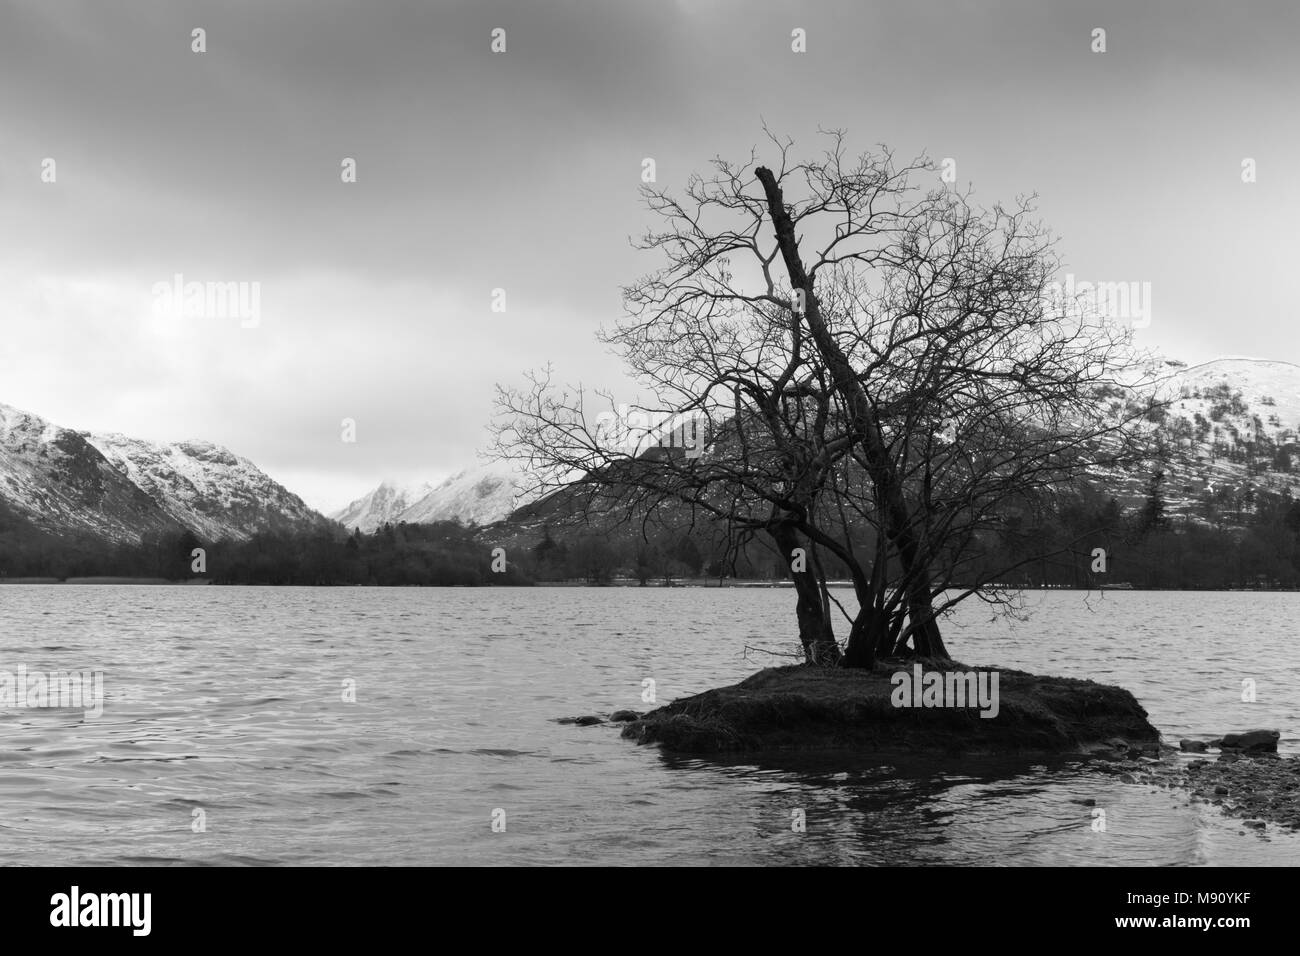 A tree on a small island in Ullswater, Lake District, Cumbria. Snow covered fells and hills are in the background and the sky is overcast. - Stock Image